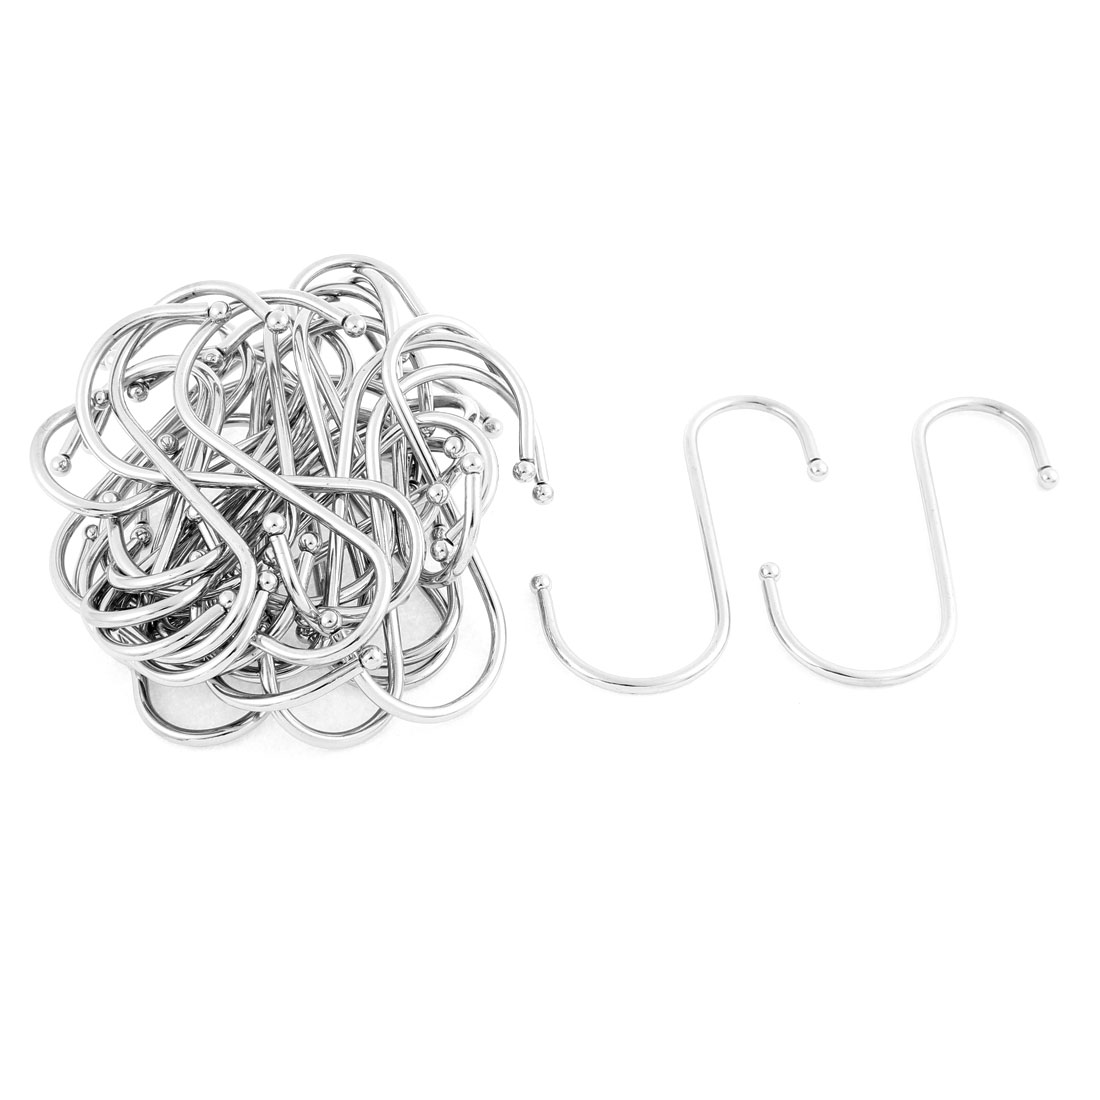 Bedroom Stainless Steel S Shaped Hanging Clasp Hooks 4 Inch Length 30 Pcs